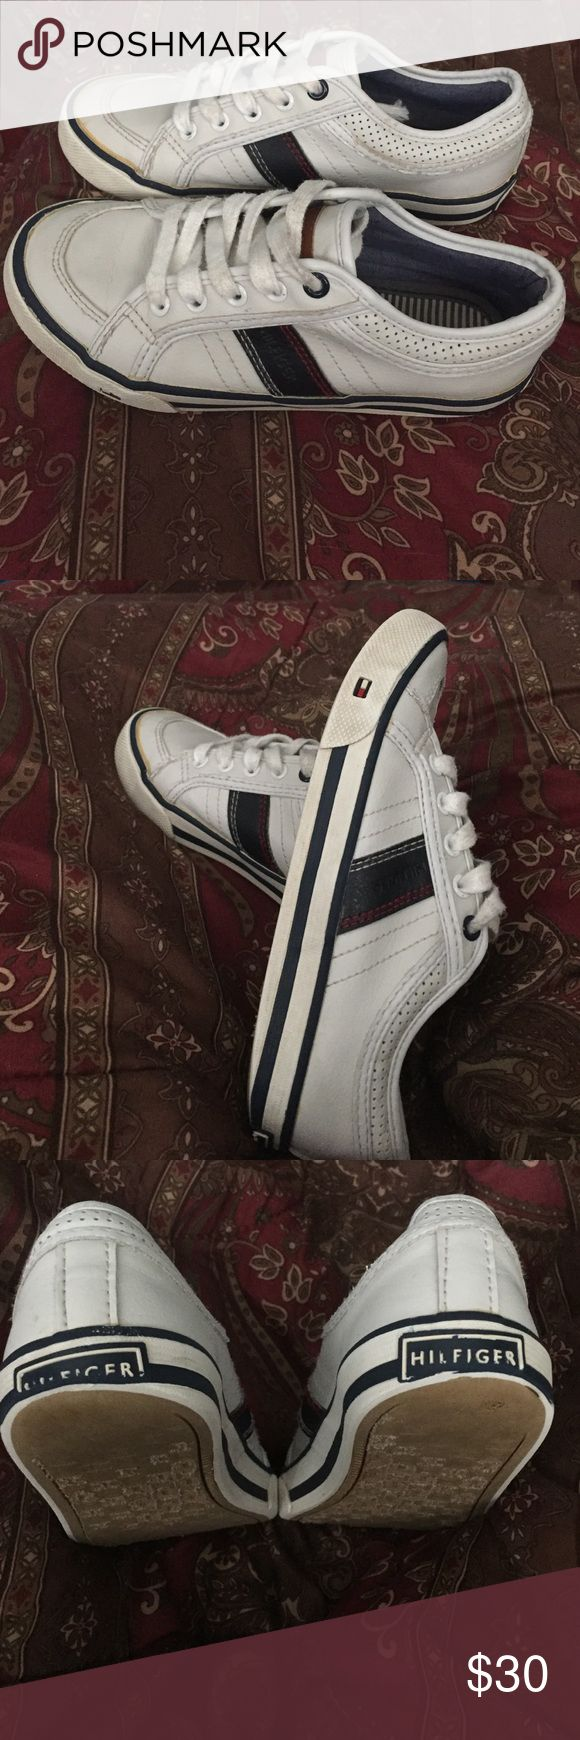 Little kids Tommy Hilfiger unisex sneakers. Sz 13 Cute little white sneakers with navy blue trimming and red stitching. Size 13 for girls or boys. They are unisex. Tommy Hilfiger Shoes Sneakers